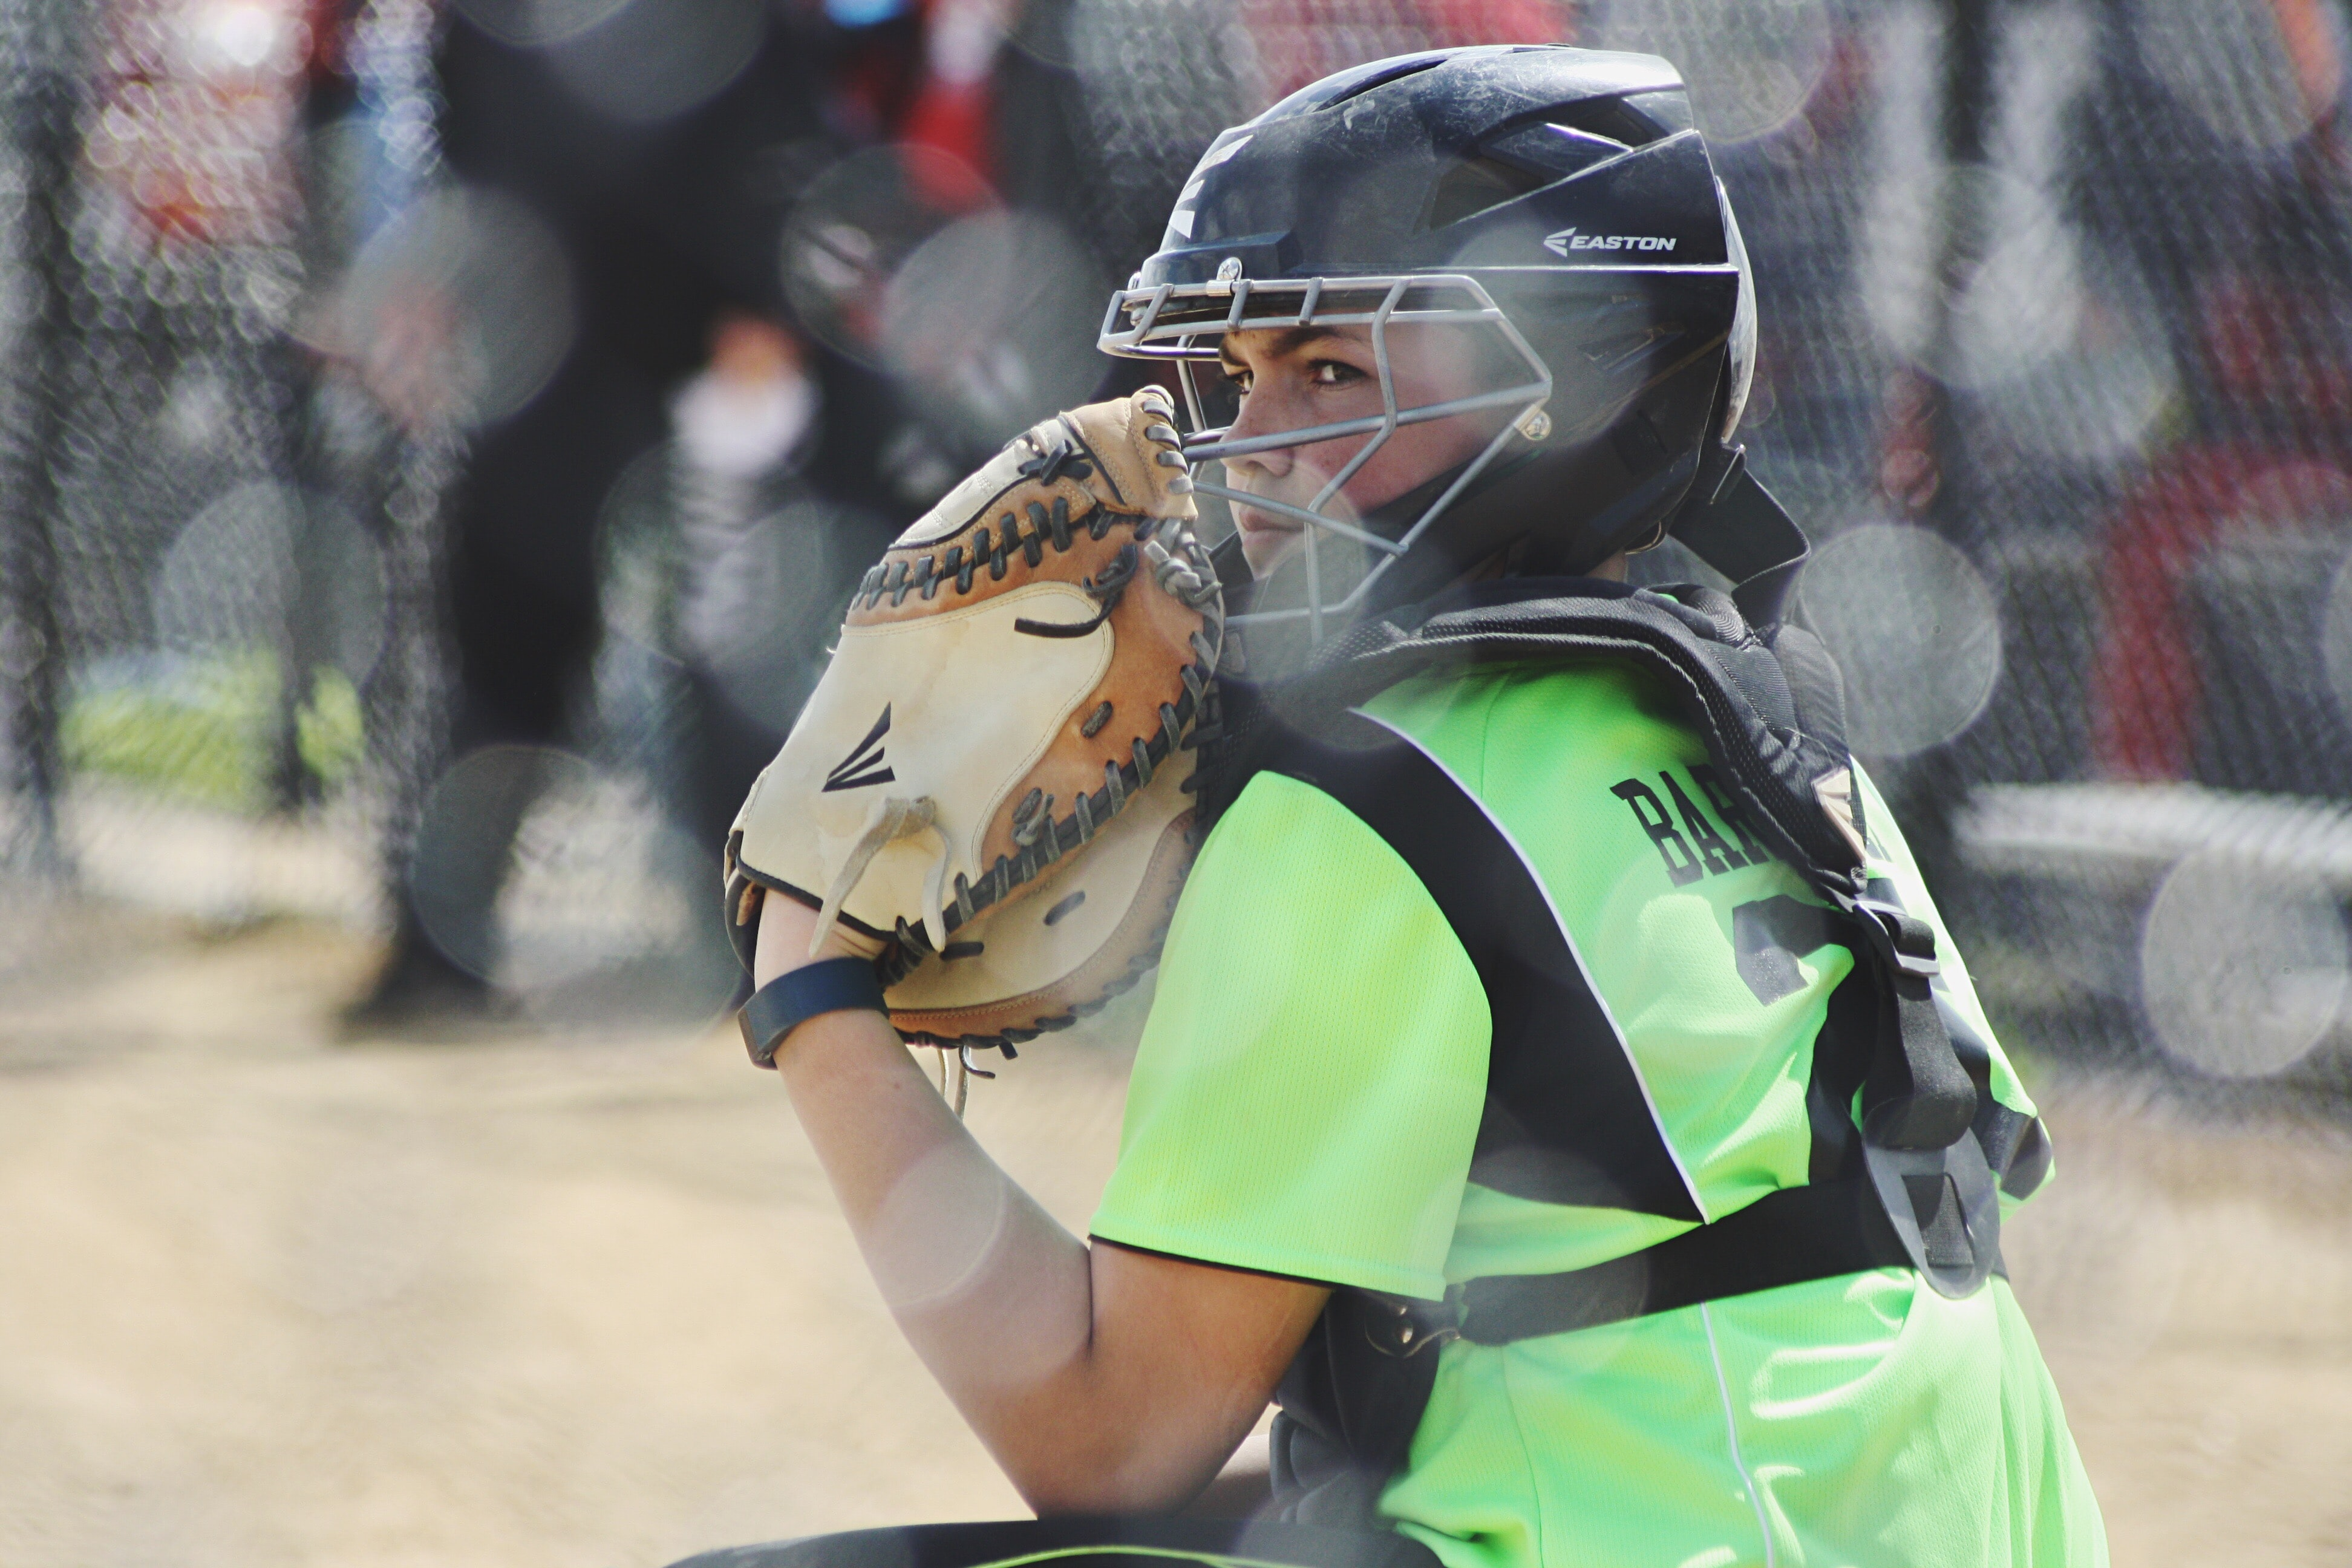 Softball catcher looking for signs